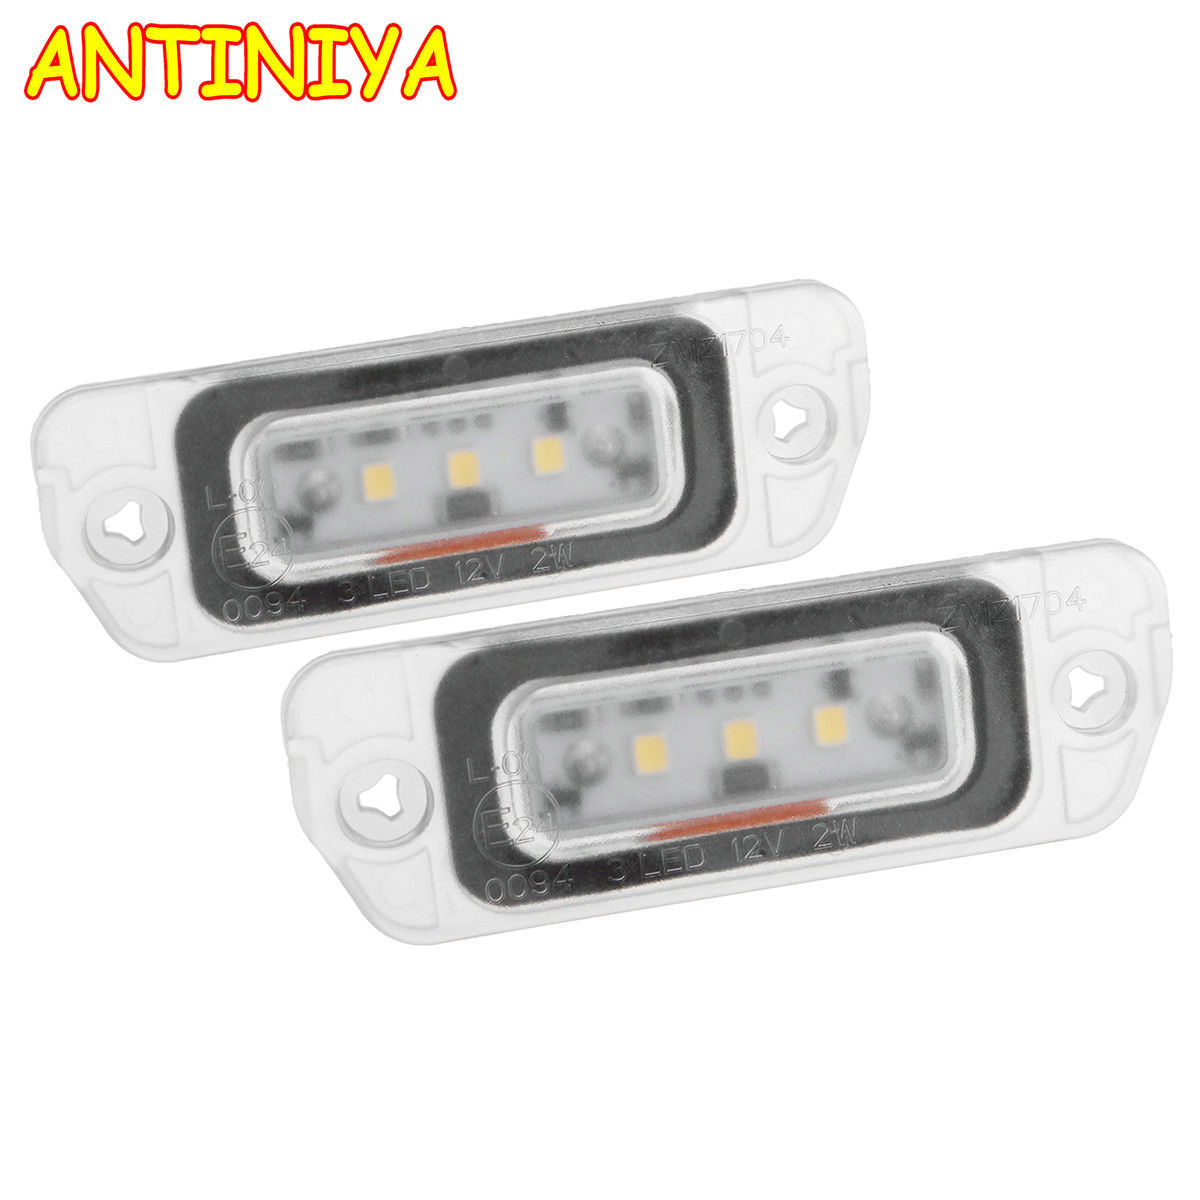 2pcs Error Free LED License Plate Light Lamp A2518200166 Fit for Mercedes X164 W164 W251 GL ML R Class 2006 2007 2008-2012 White женская утепленная куртка bat nortonbat norton 2013